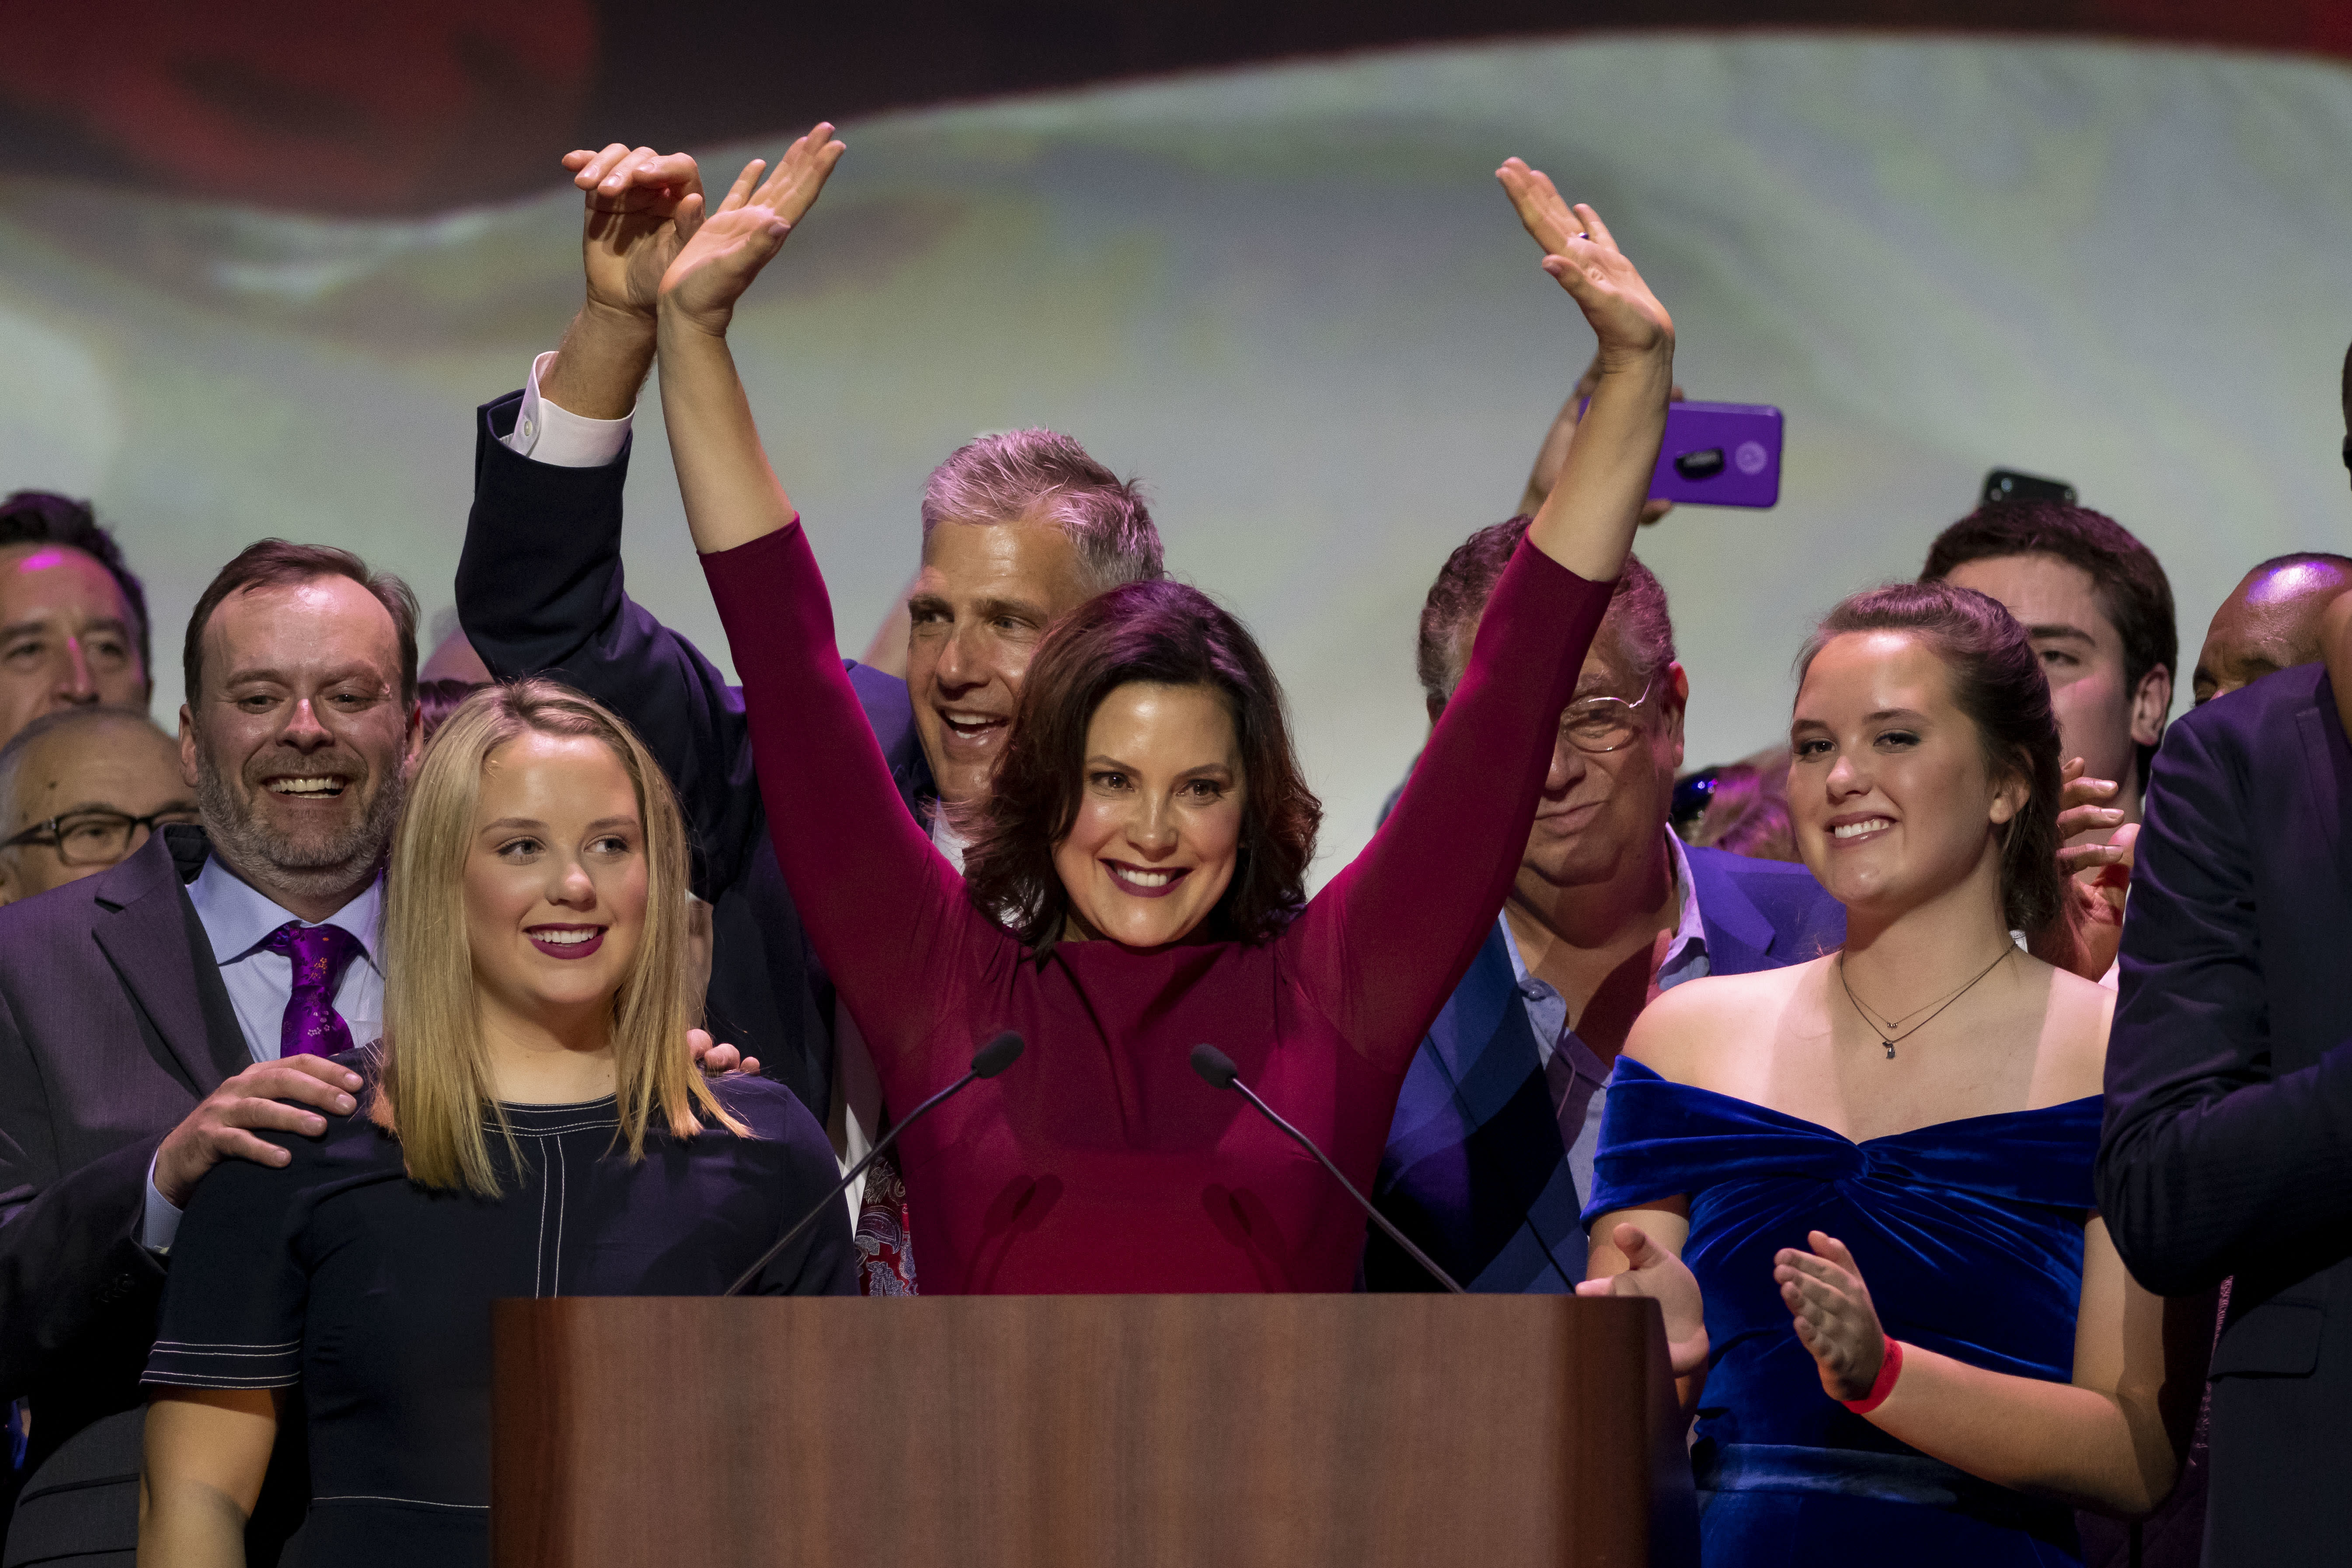 Gretchen Whitmer gives her acceptance speech after being elected the next governor of Michigan, in Detroit, Tuesday, Nov. 6, 2018. The Michigan Democratic Party held its election night event at the Sound Board Theater at MotorCity Casino. (David Guralnick/Detroit News via AP)